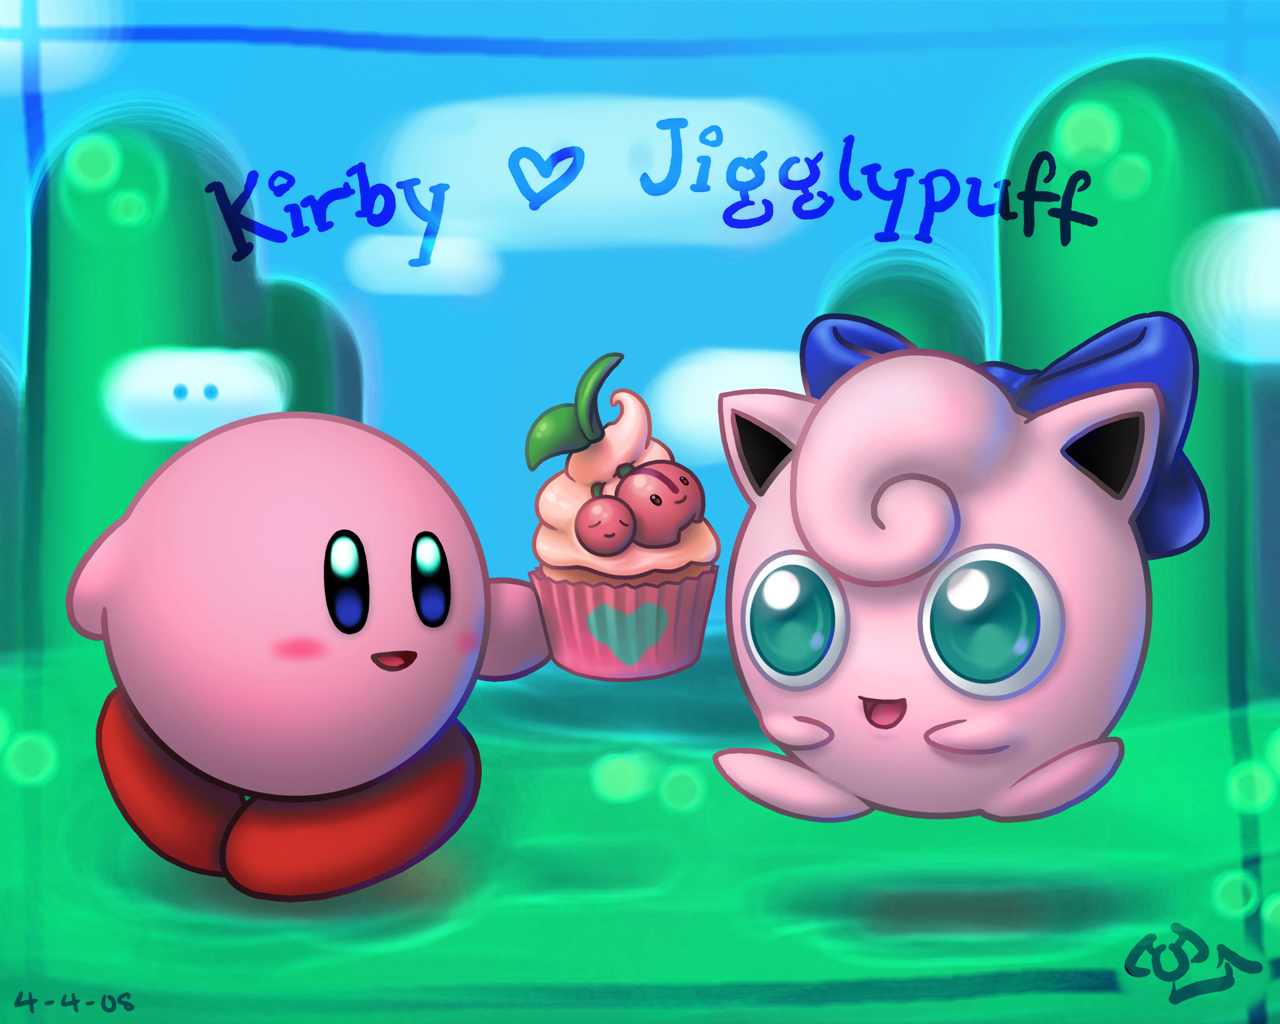 Kirby And Jigglypuff From Bubby68 Hosted By Neoseeker